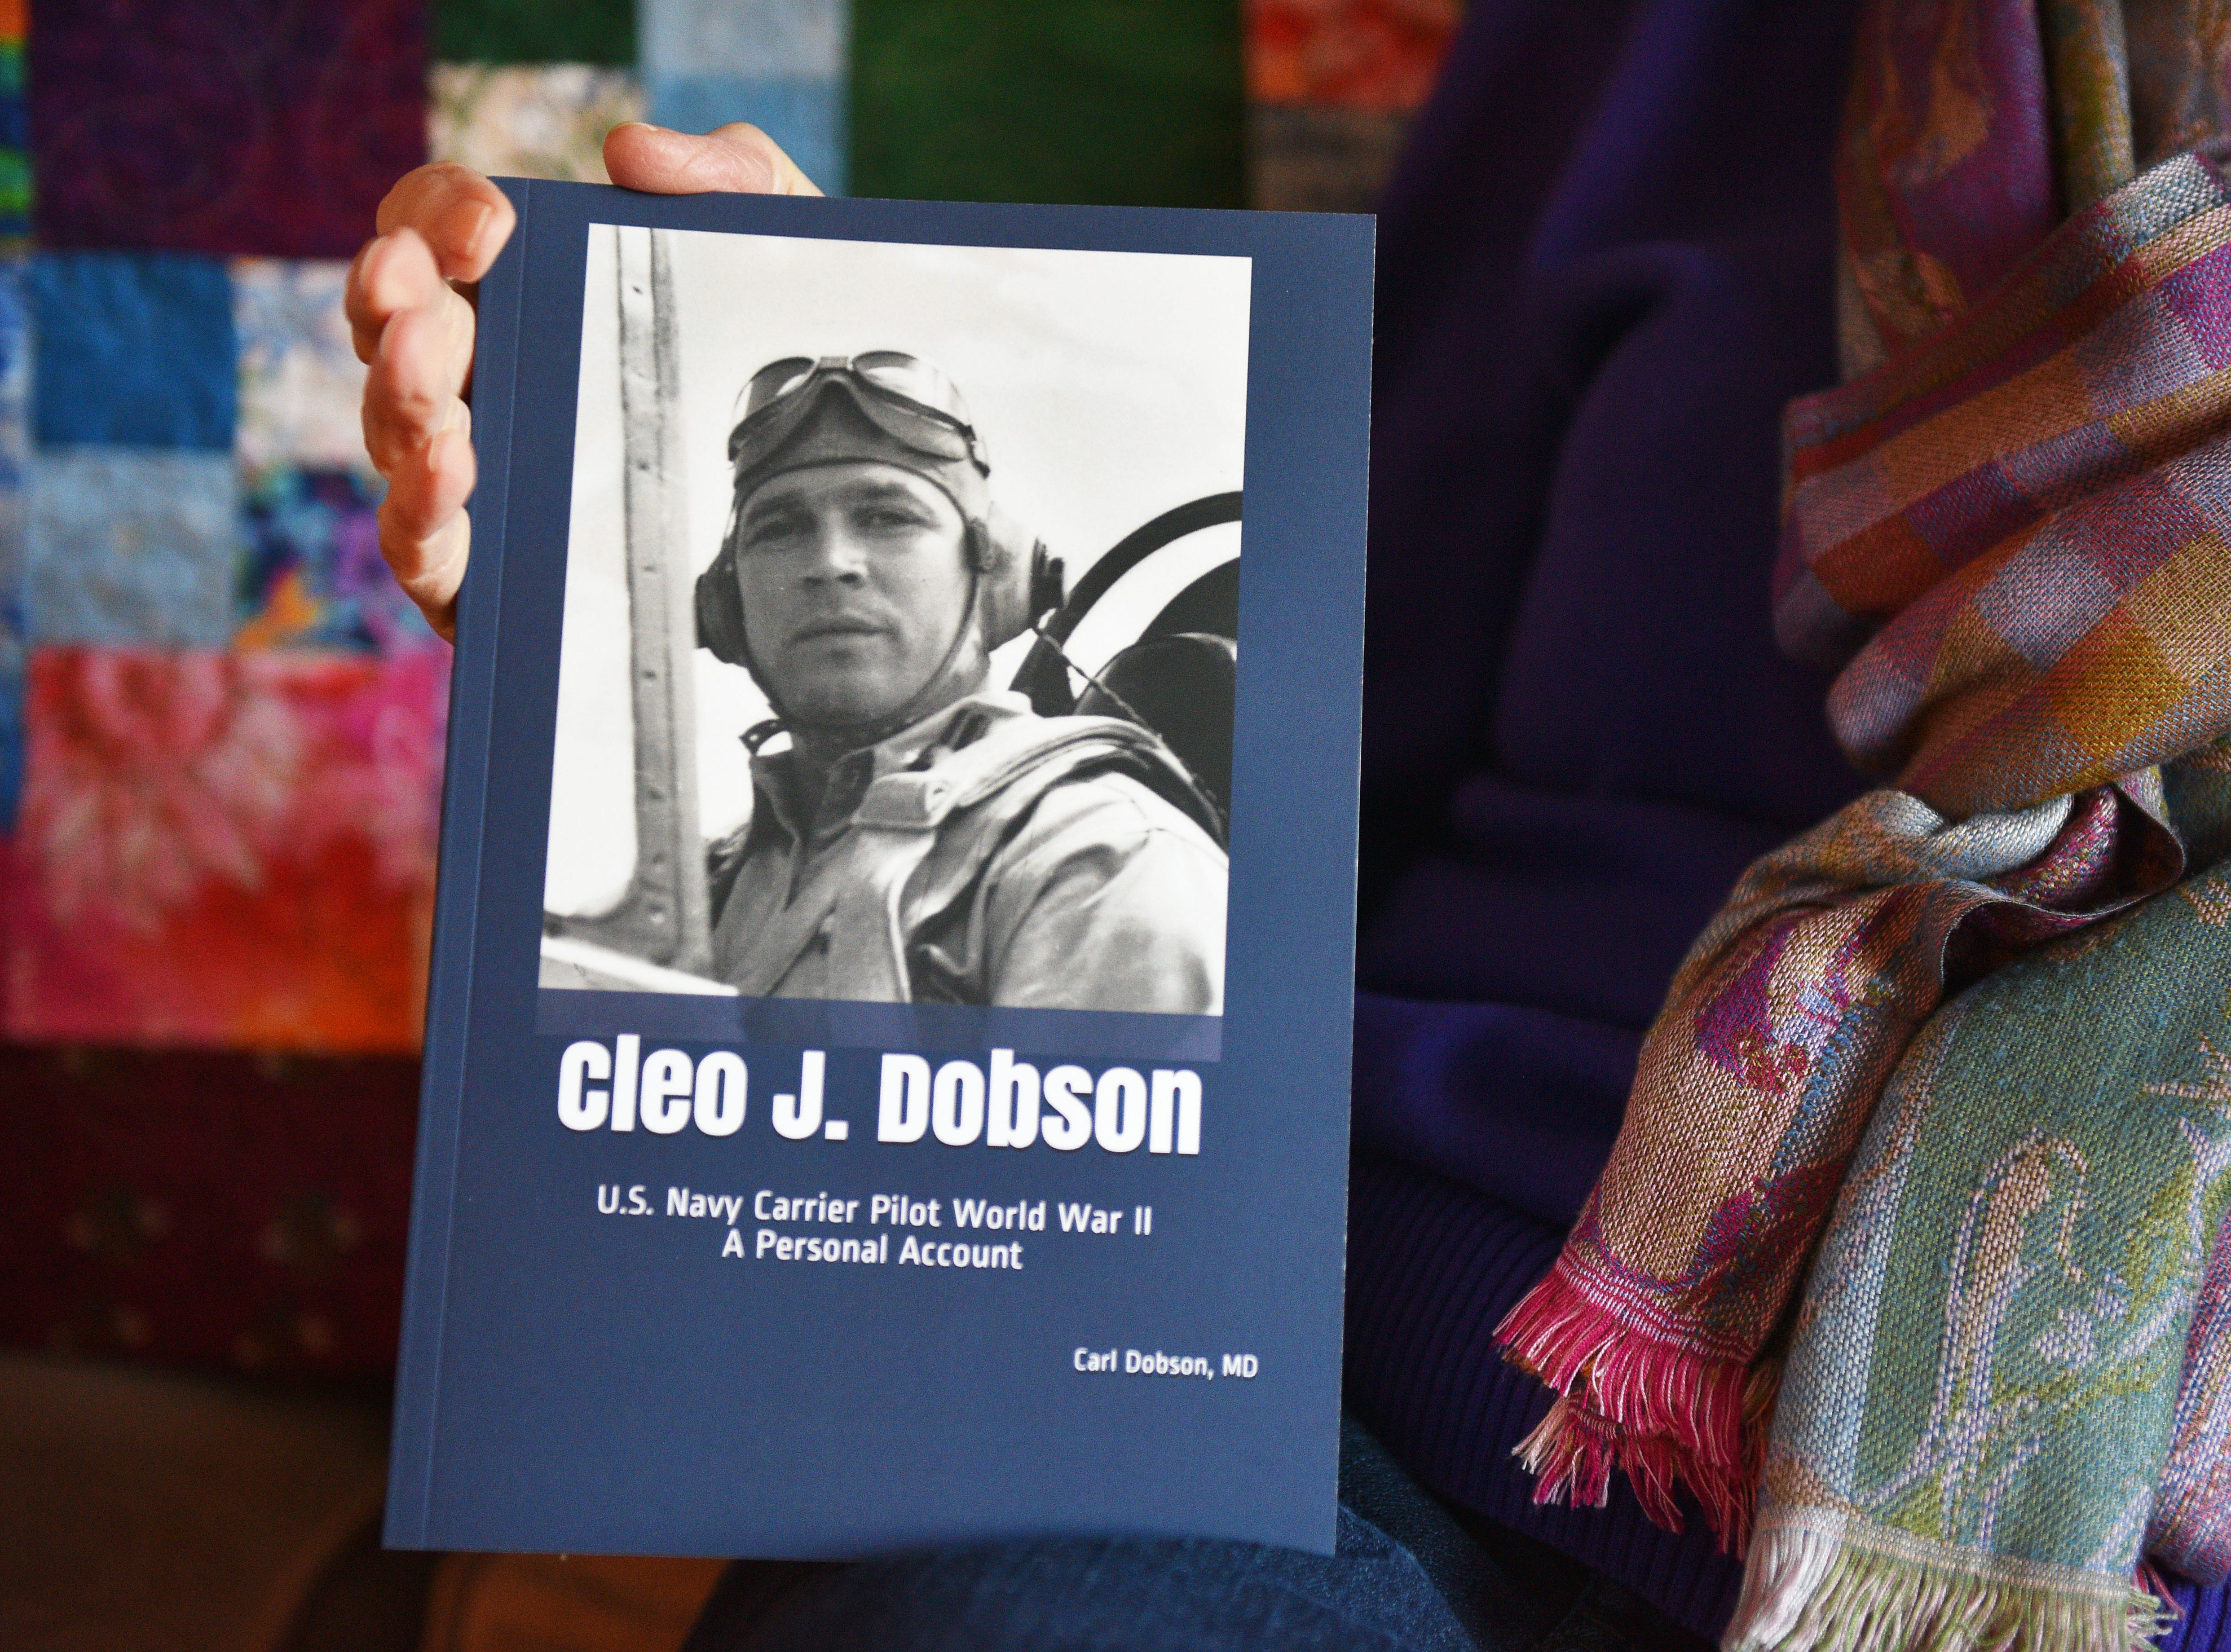 Nancy Napier talks about a book her and her cousin, Carl Dobson, published about her father, Cleo Dobson, Wednesday Dec. 5, in Sioux Falls. Napier's father was a U.S. Navy carrier pilot in World War II. The book is titled  ÒCleo J. Dobson: U.S. Navy Carrier Pilot World War II, a Personal Account.Ó